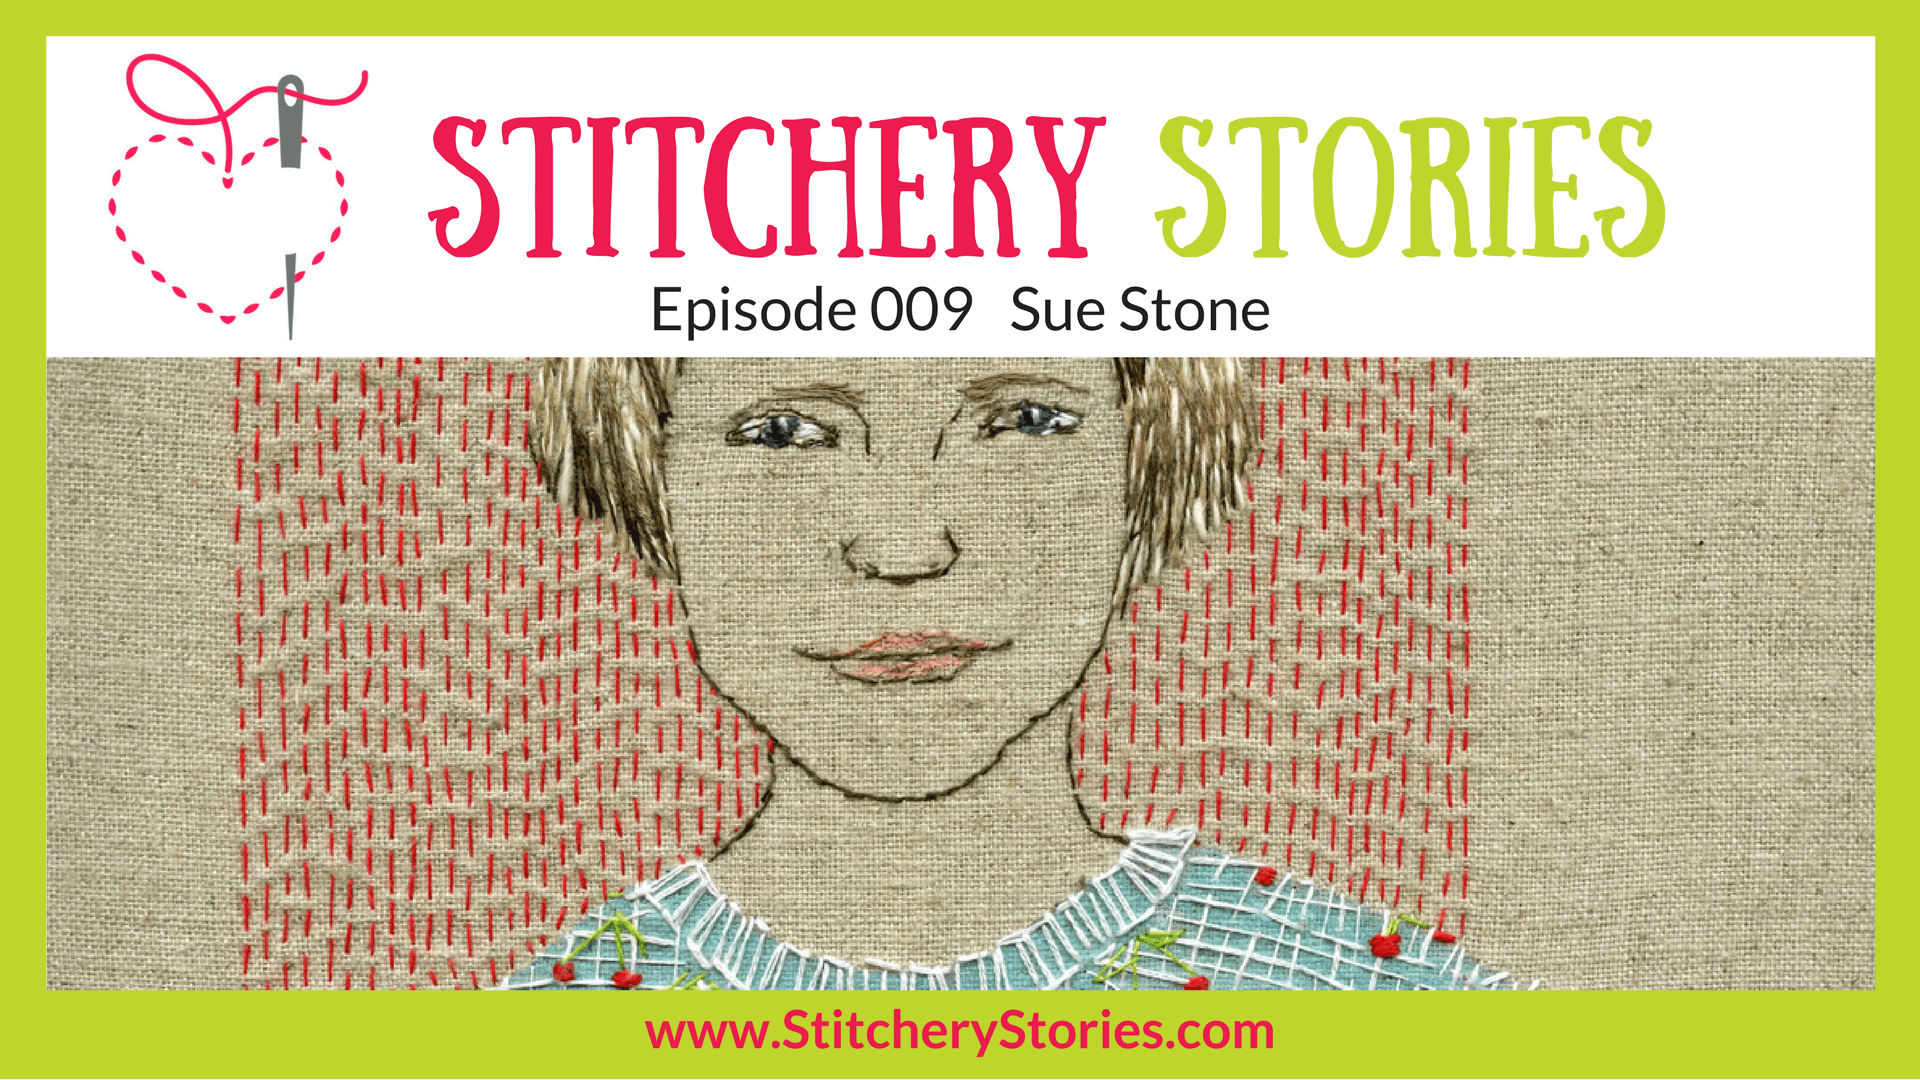 Sue Stone Stitchery Stories Podcast Wide Episode Art